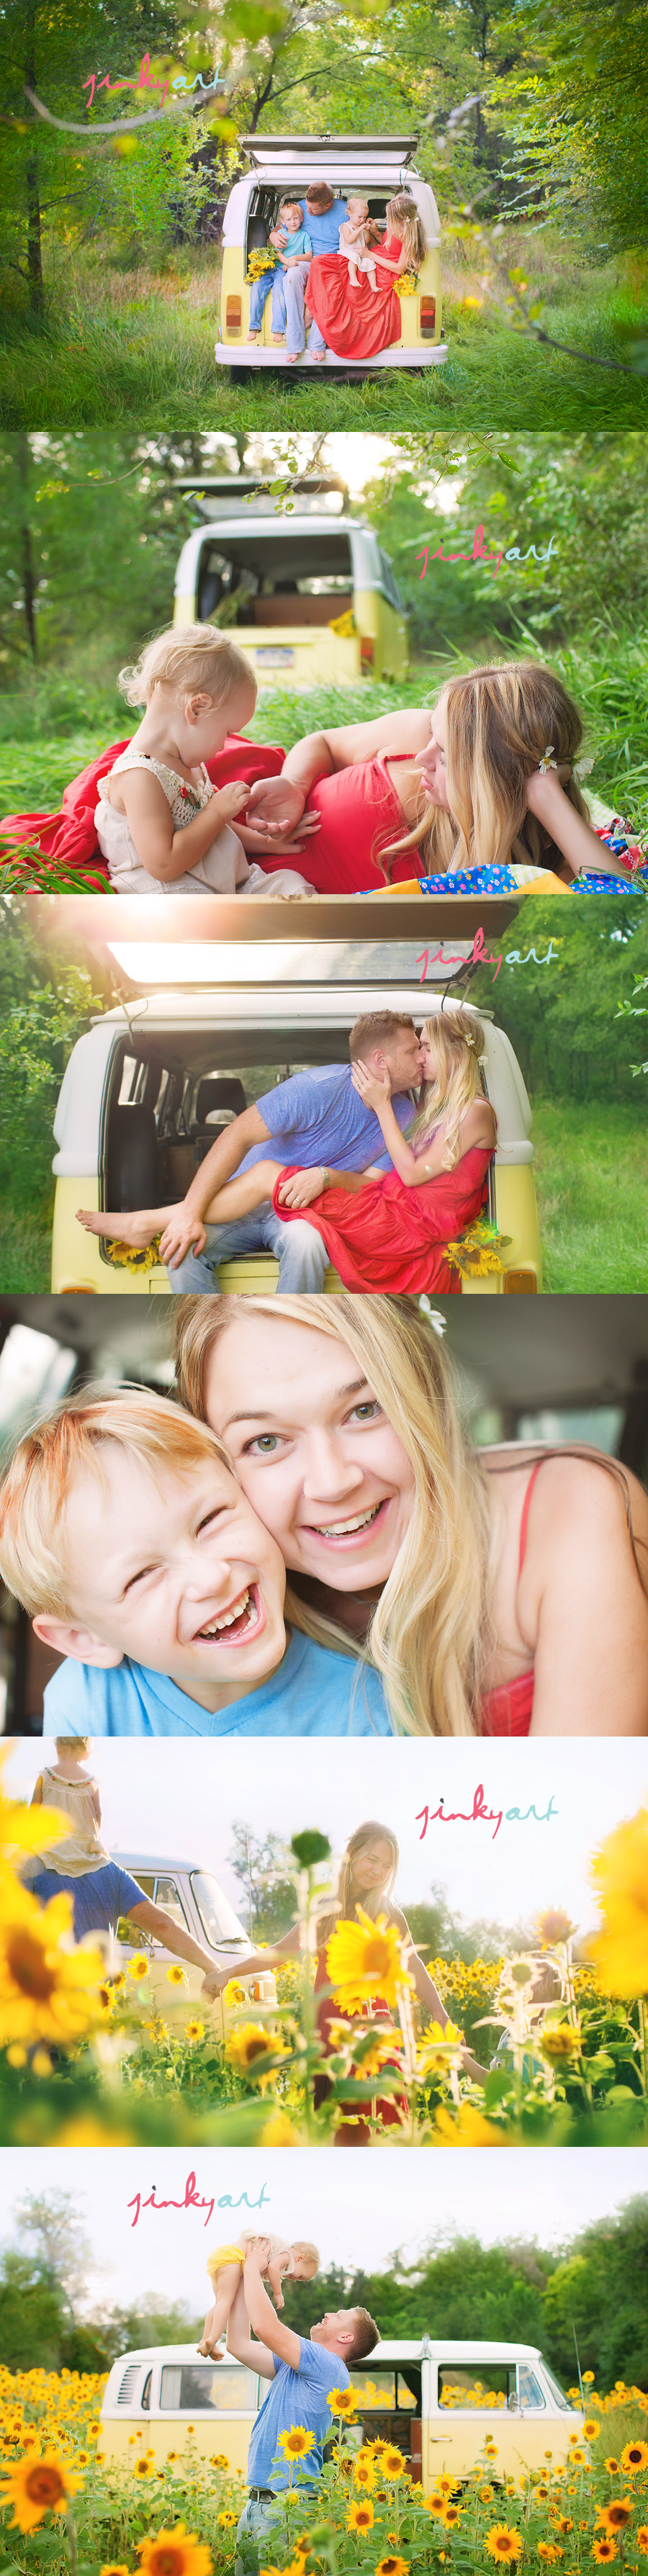 I want to do a photo shoot like this with my little family? Anyone got a spare vw bus lying around??? Anyone know a good field full of sunflower??? No??